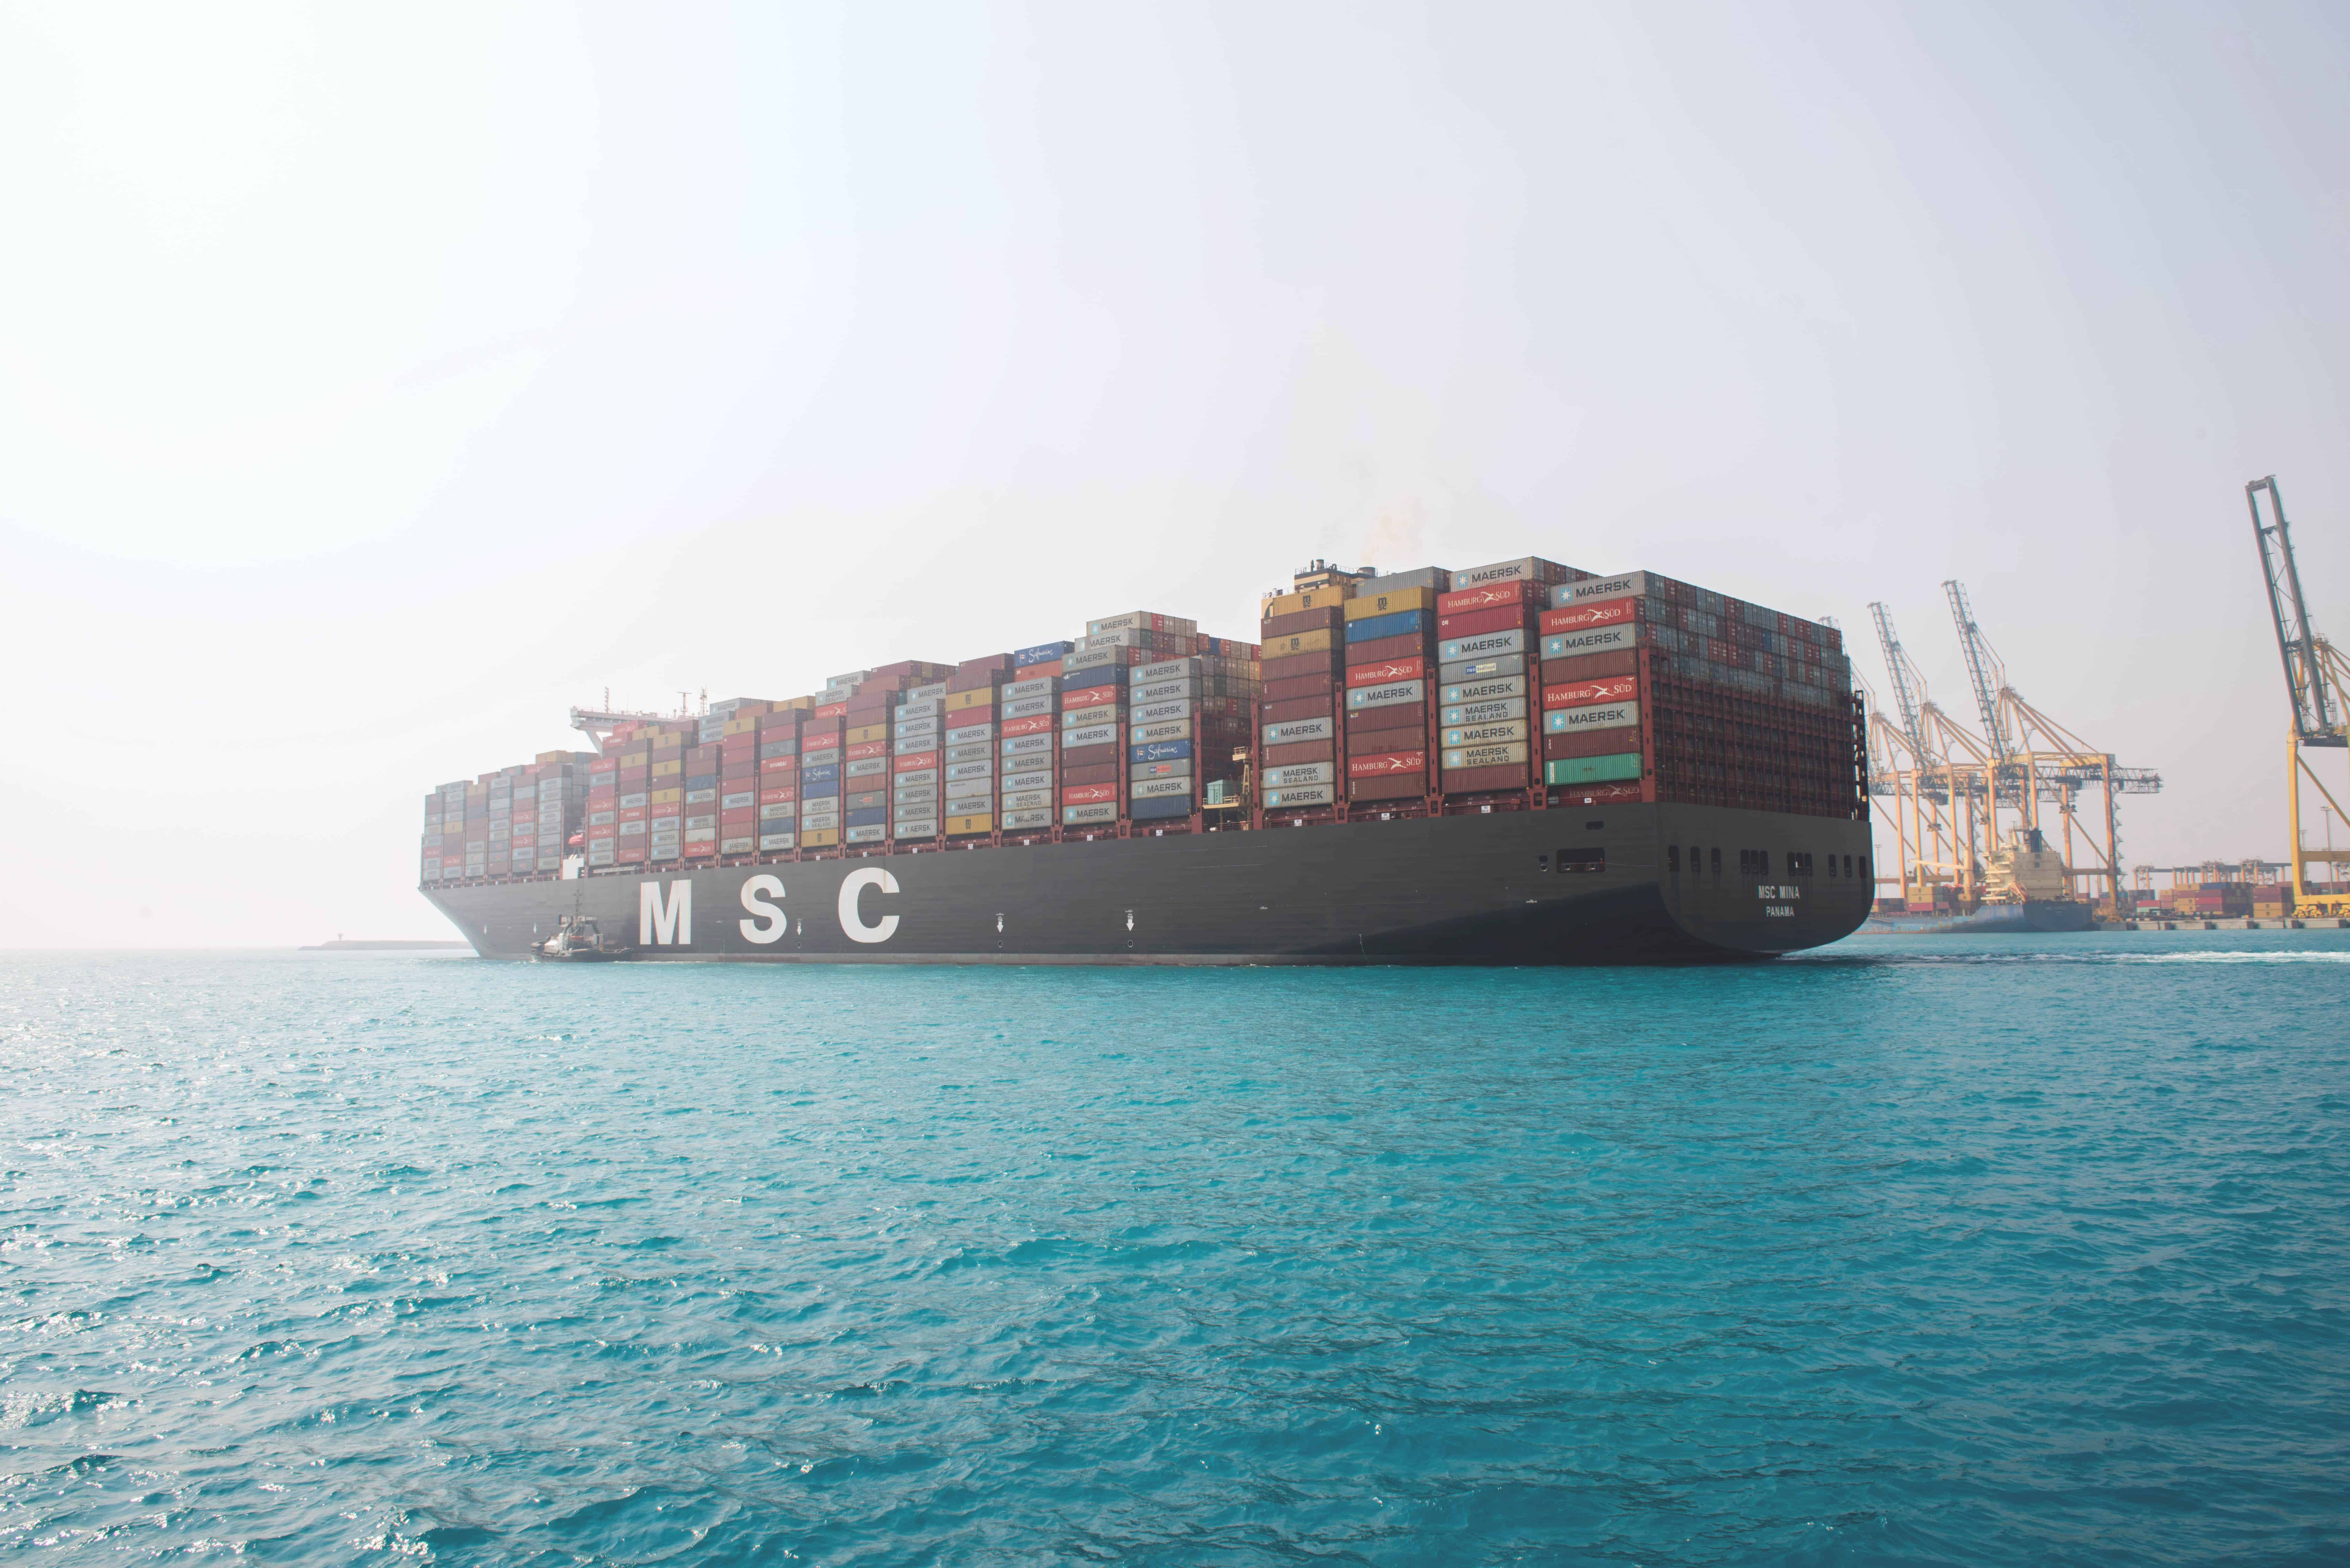 MSC MINA, one of the World's Largest Container Ships, Docks at King Abdullah Port  Docking of MSC MINA is a testament to the Kingdom's increasing competitiveness and the importance of its global logistics standing